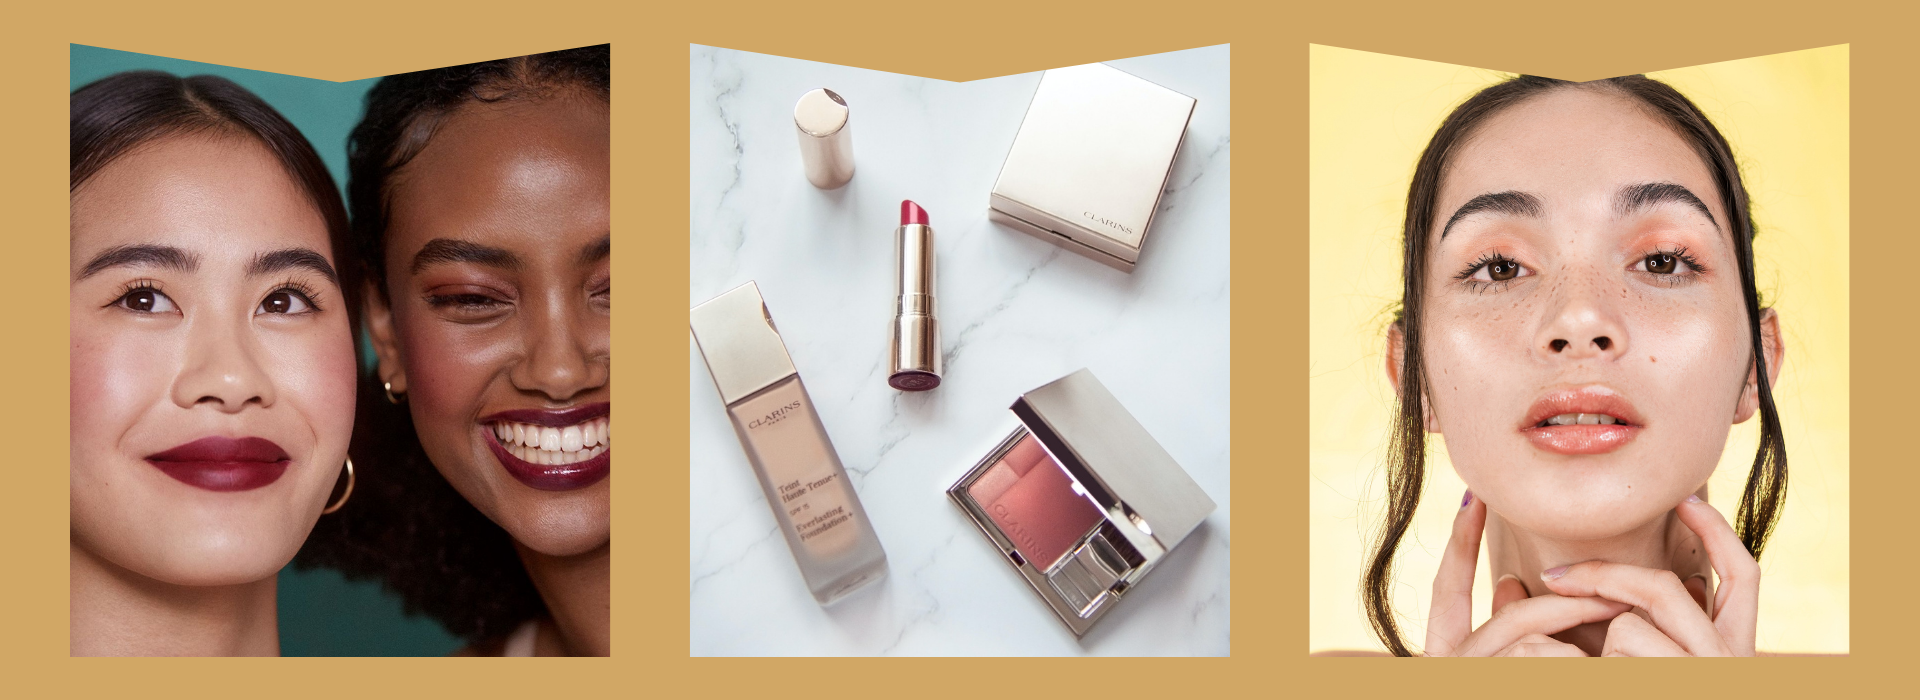 Wine coloured lipstick, rosy pink cosmetics laid out on counter, dewy orange makeup